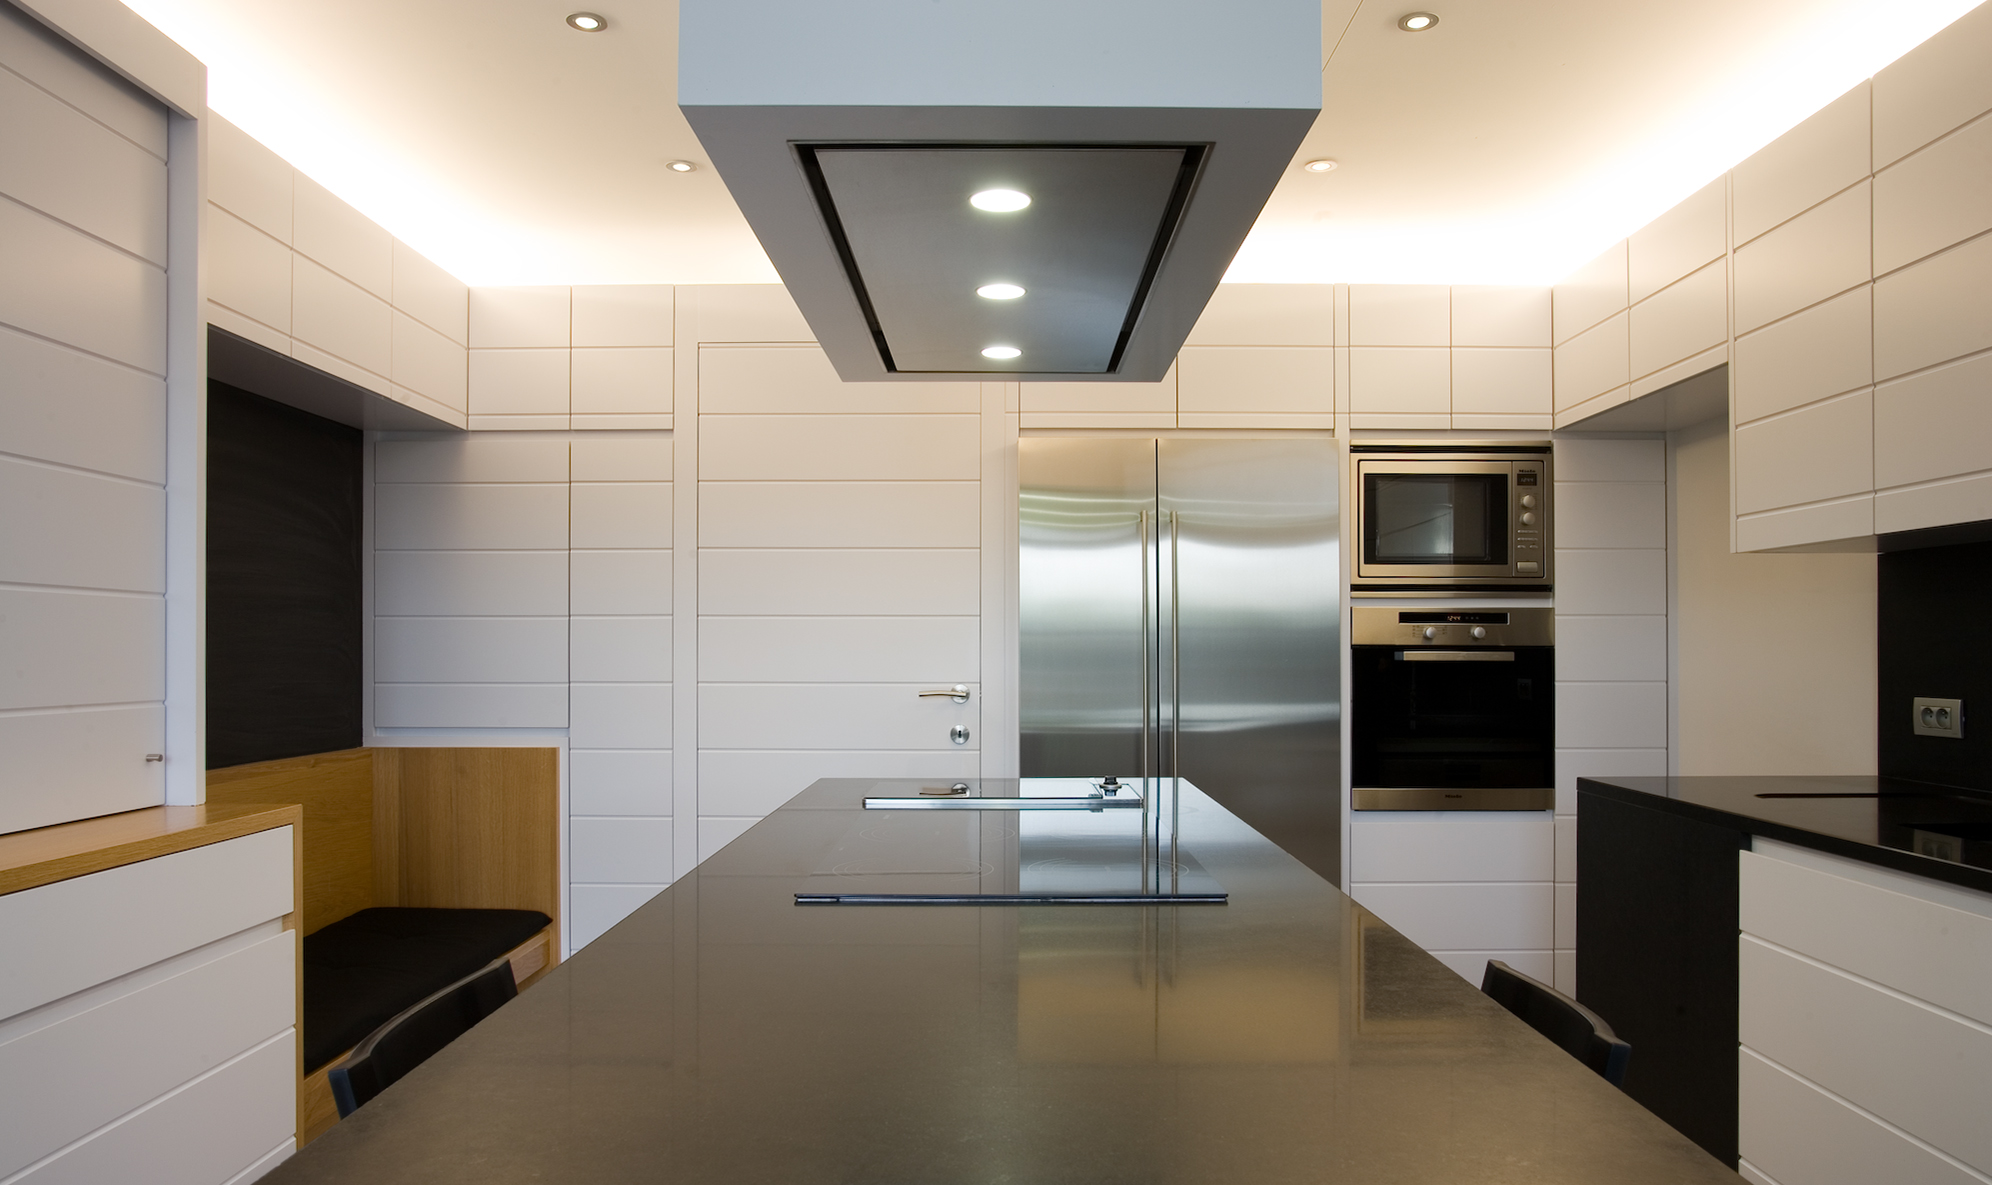 Long island kitchen by Philip Theys